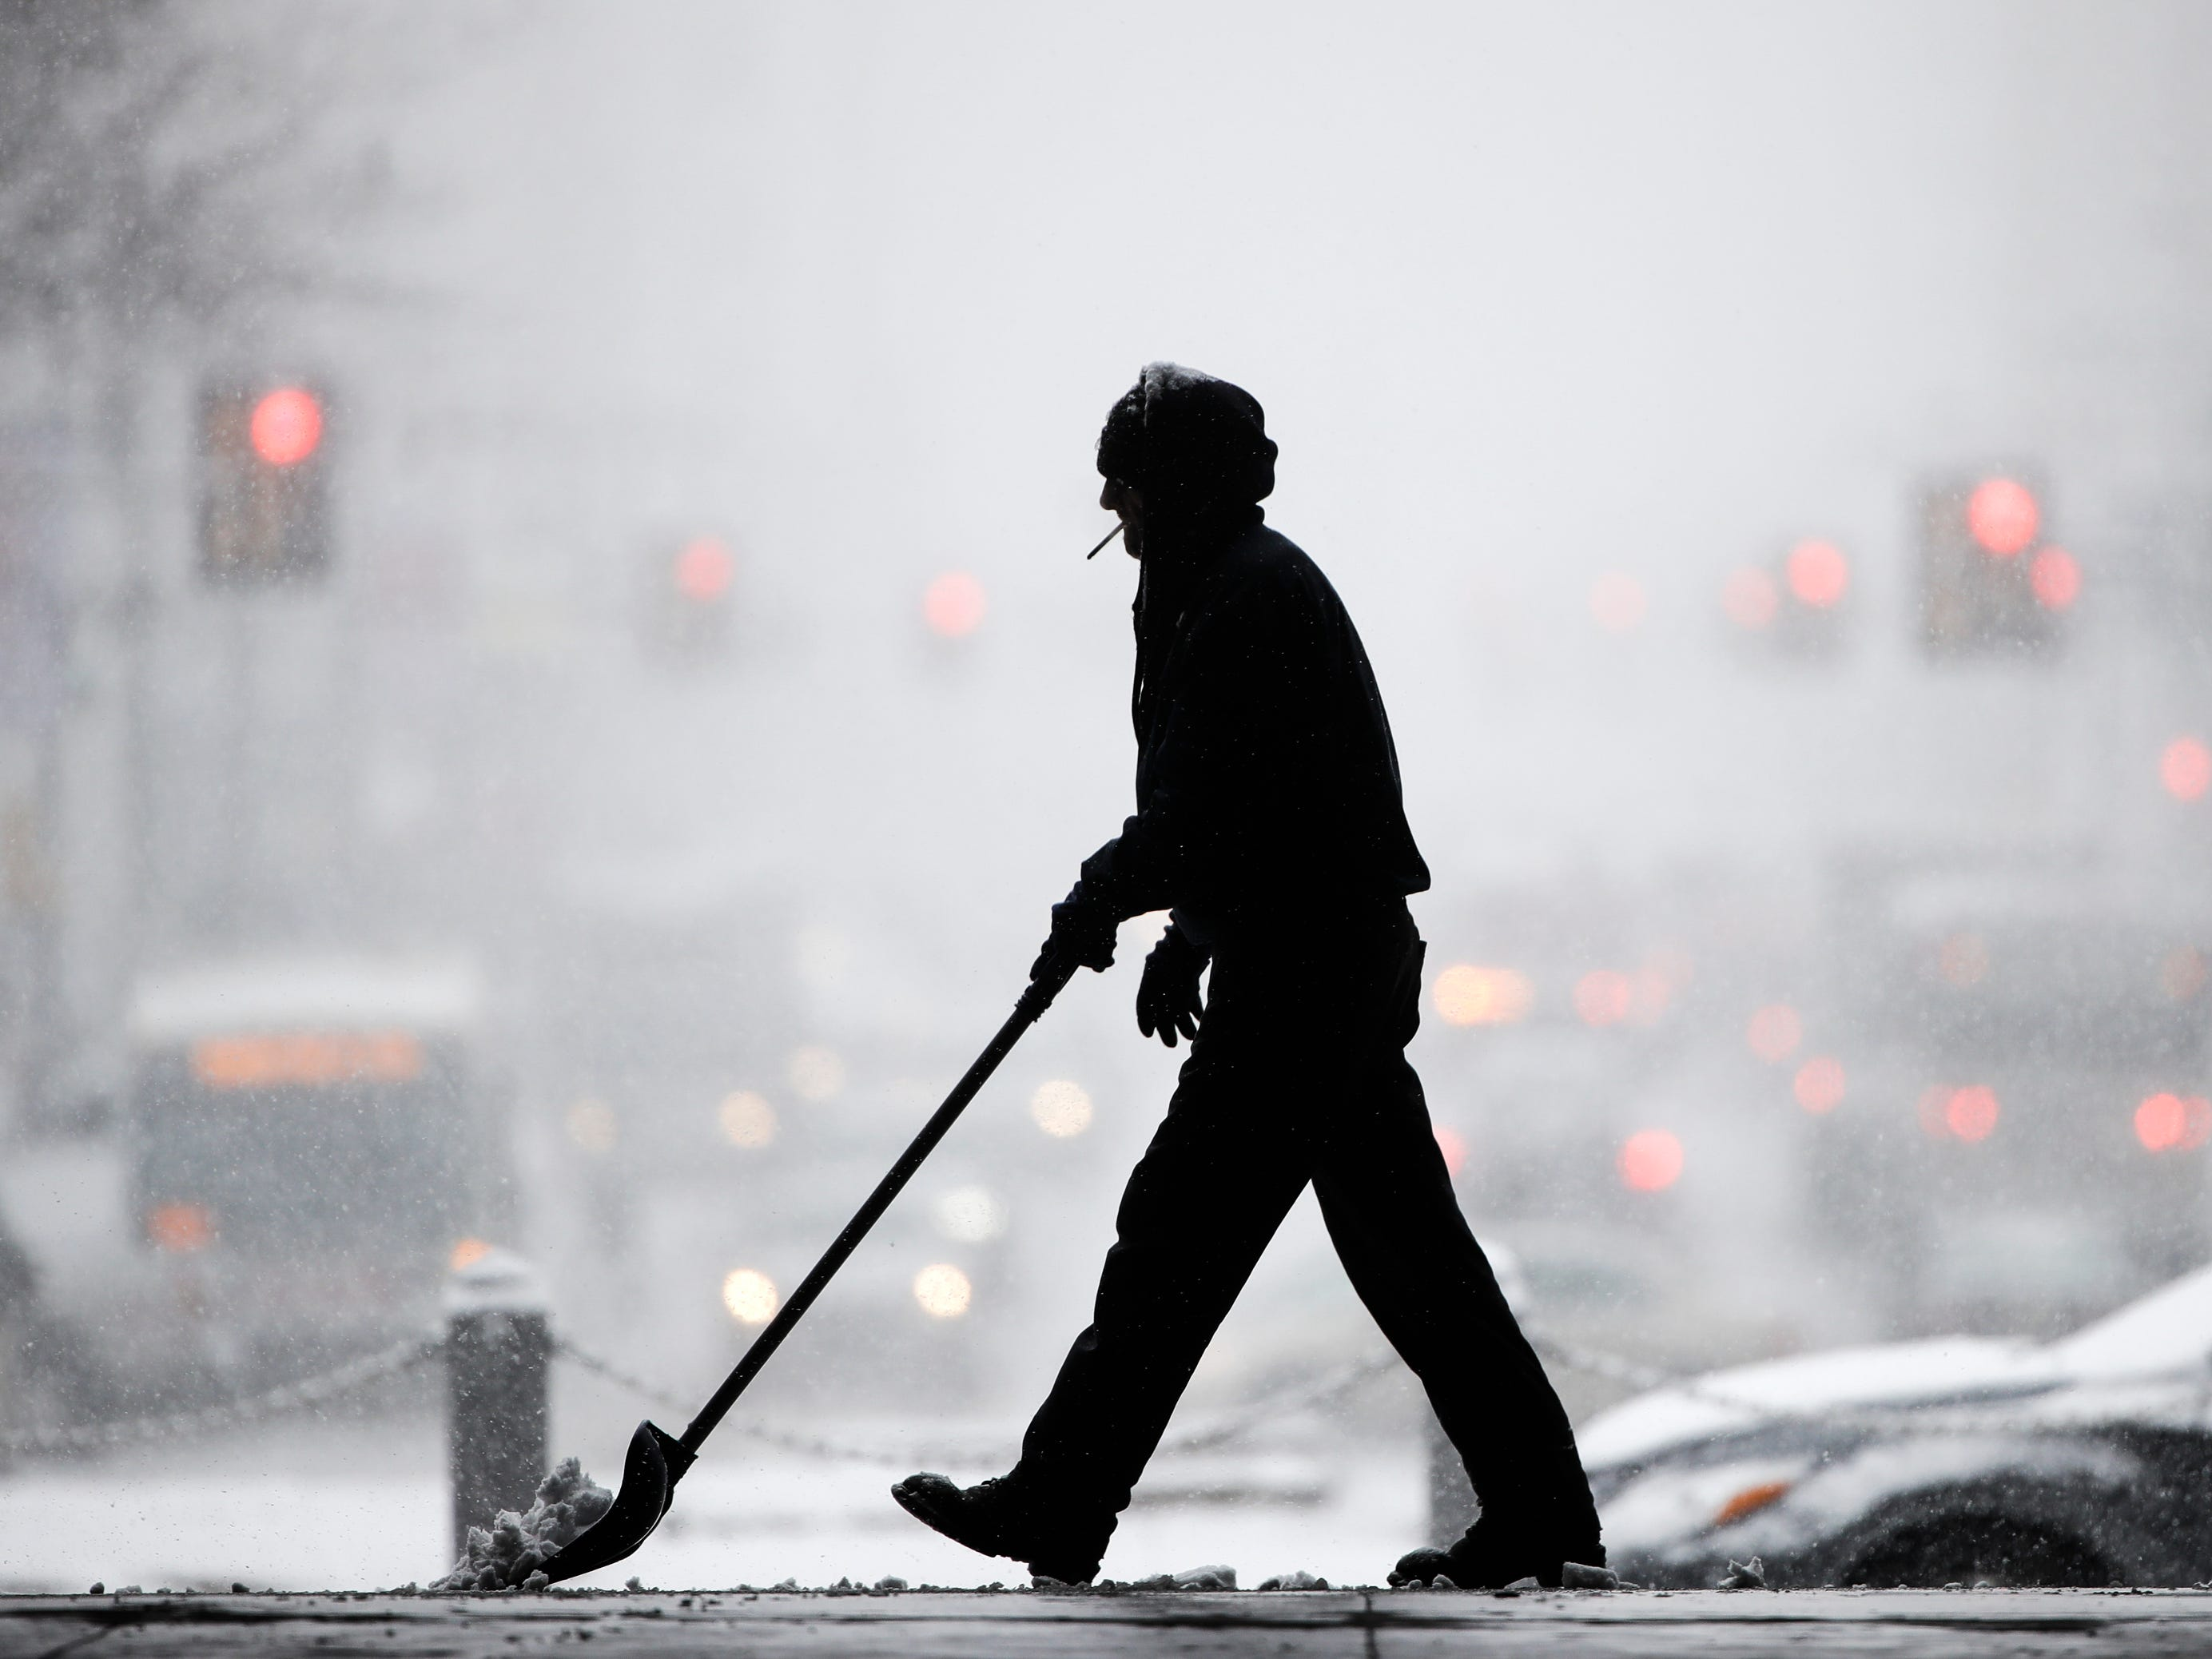 A worker at City Hall shovels snow during a winter storm in Philadelphia on Feb. 20, 2019.